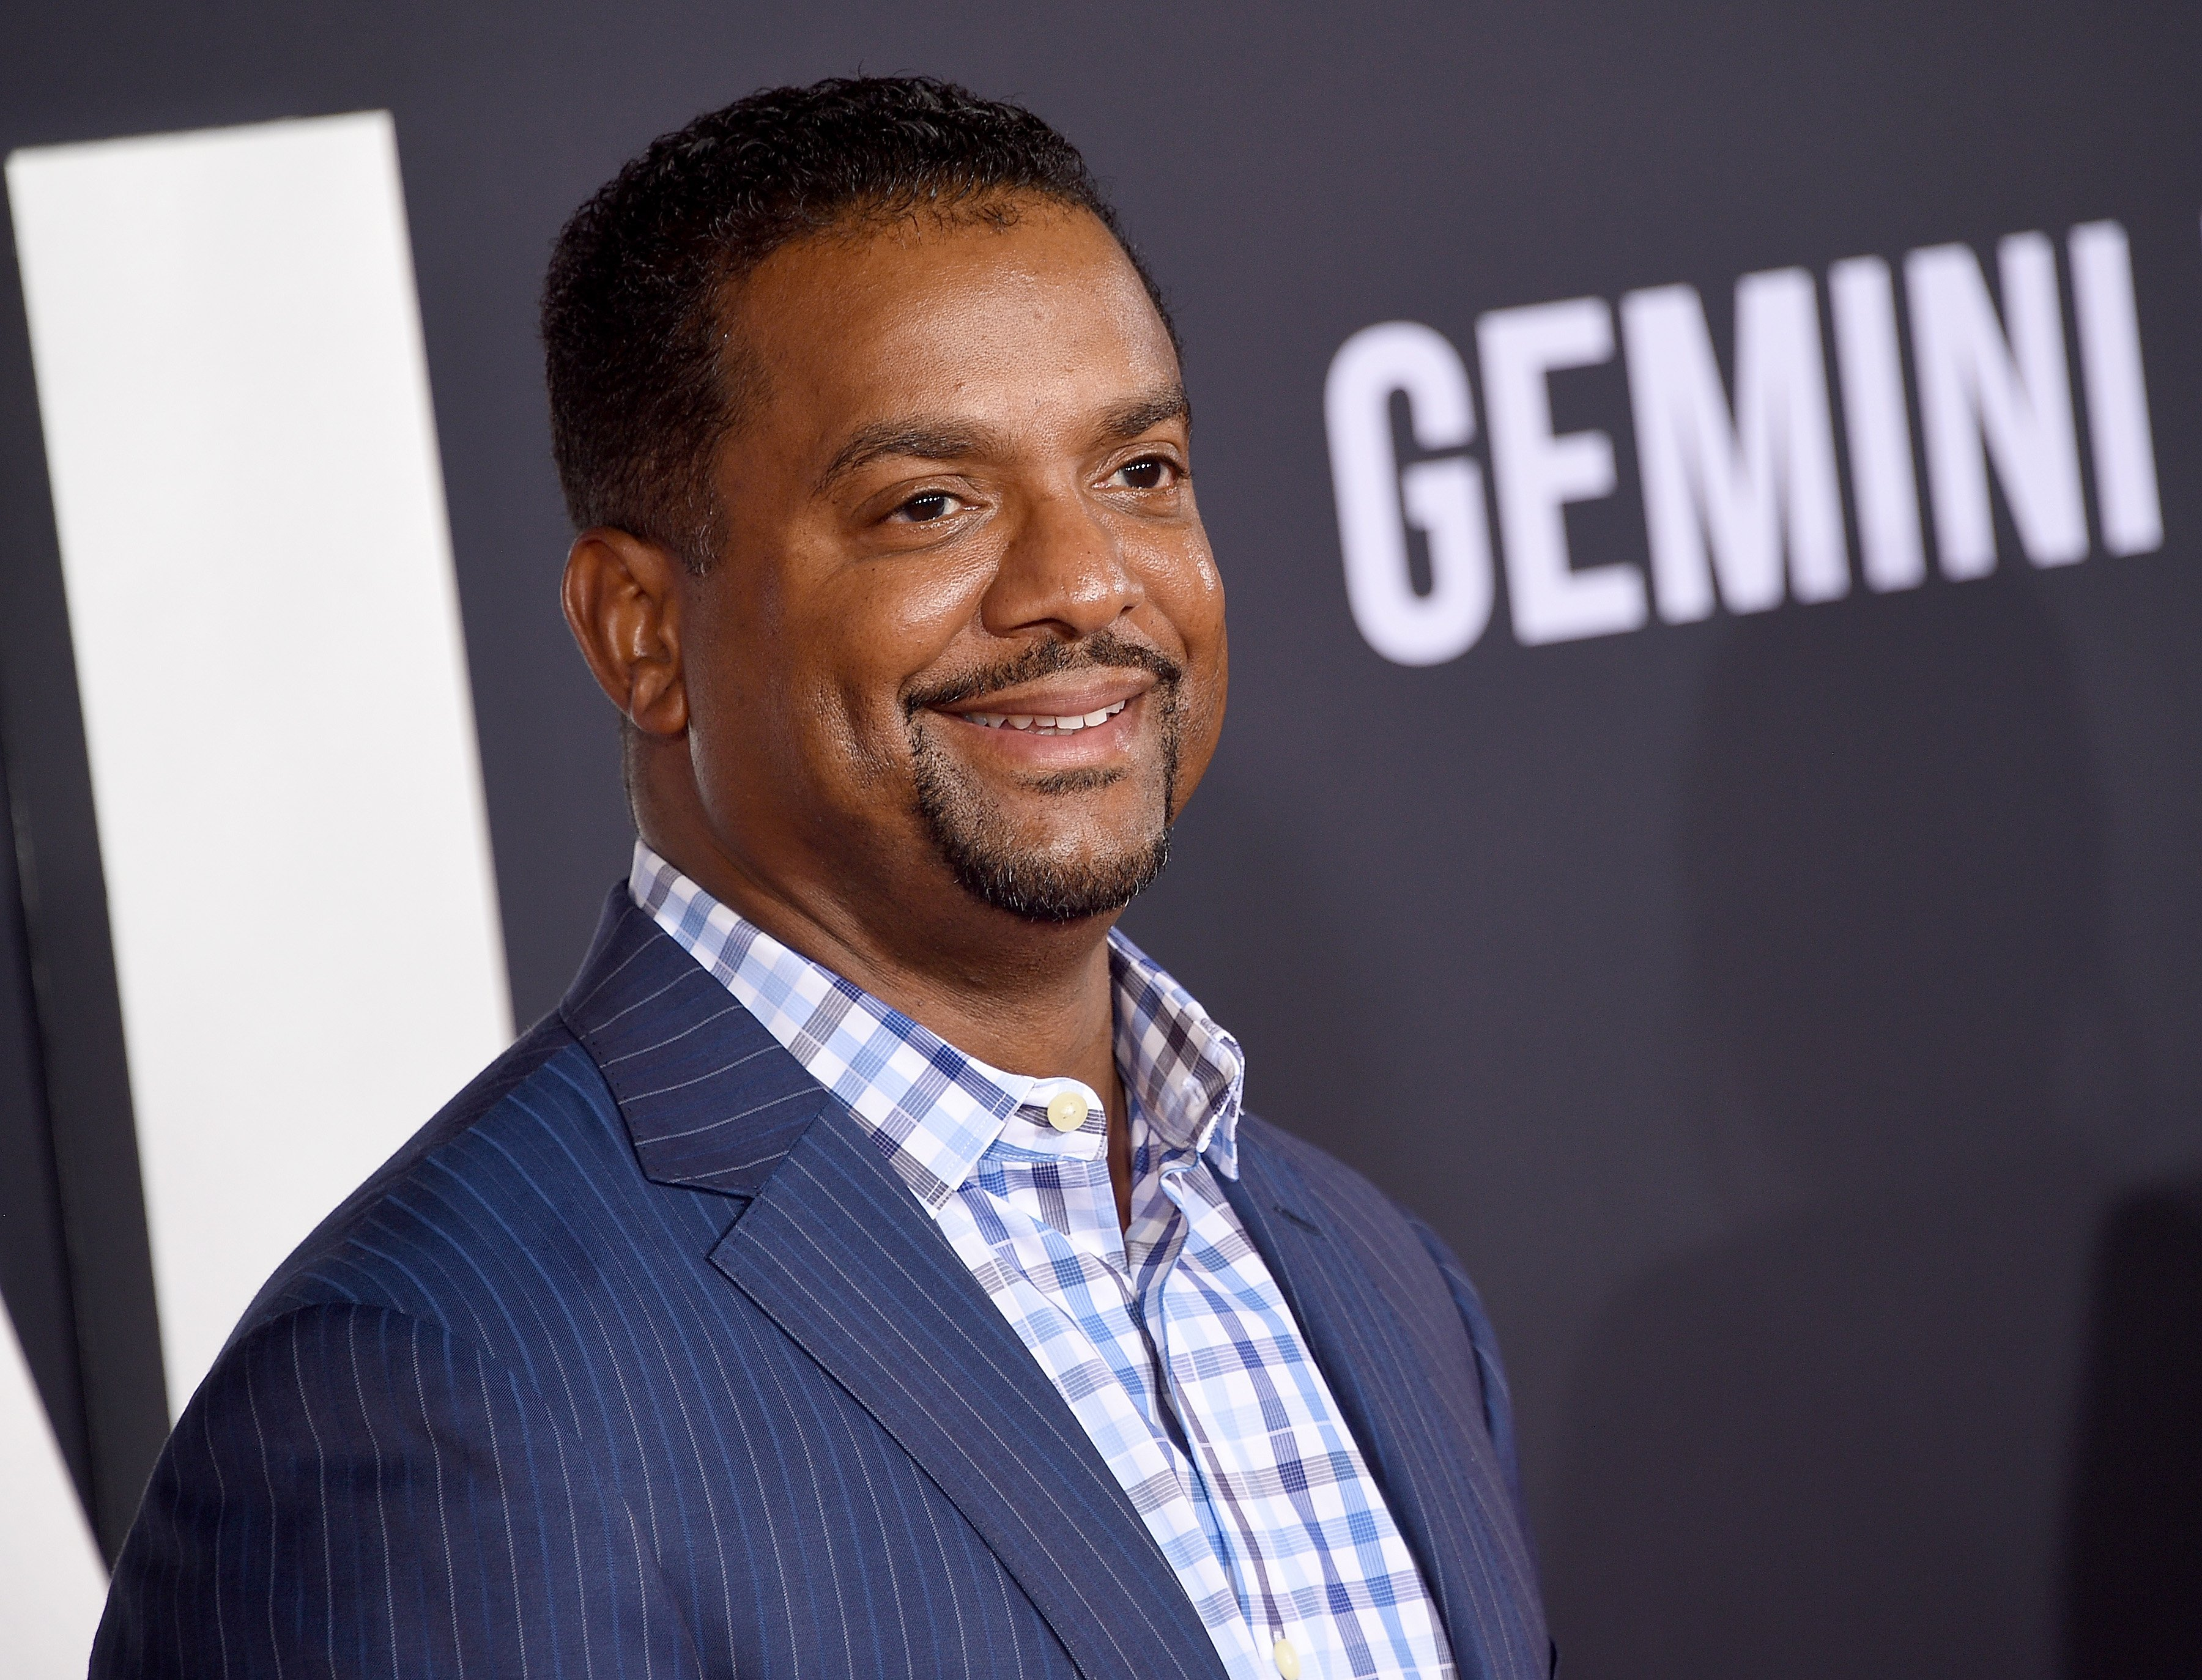 """Alfonso Ribeiro at the Premiere Of """"Gemini Man"""" on October 6, 2019 in Hollywood, California.